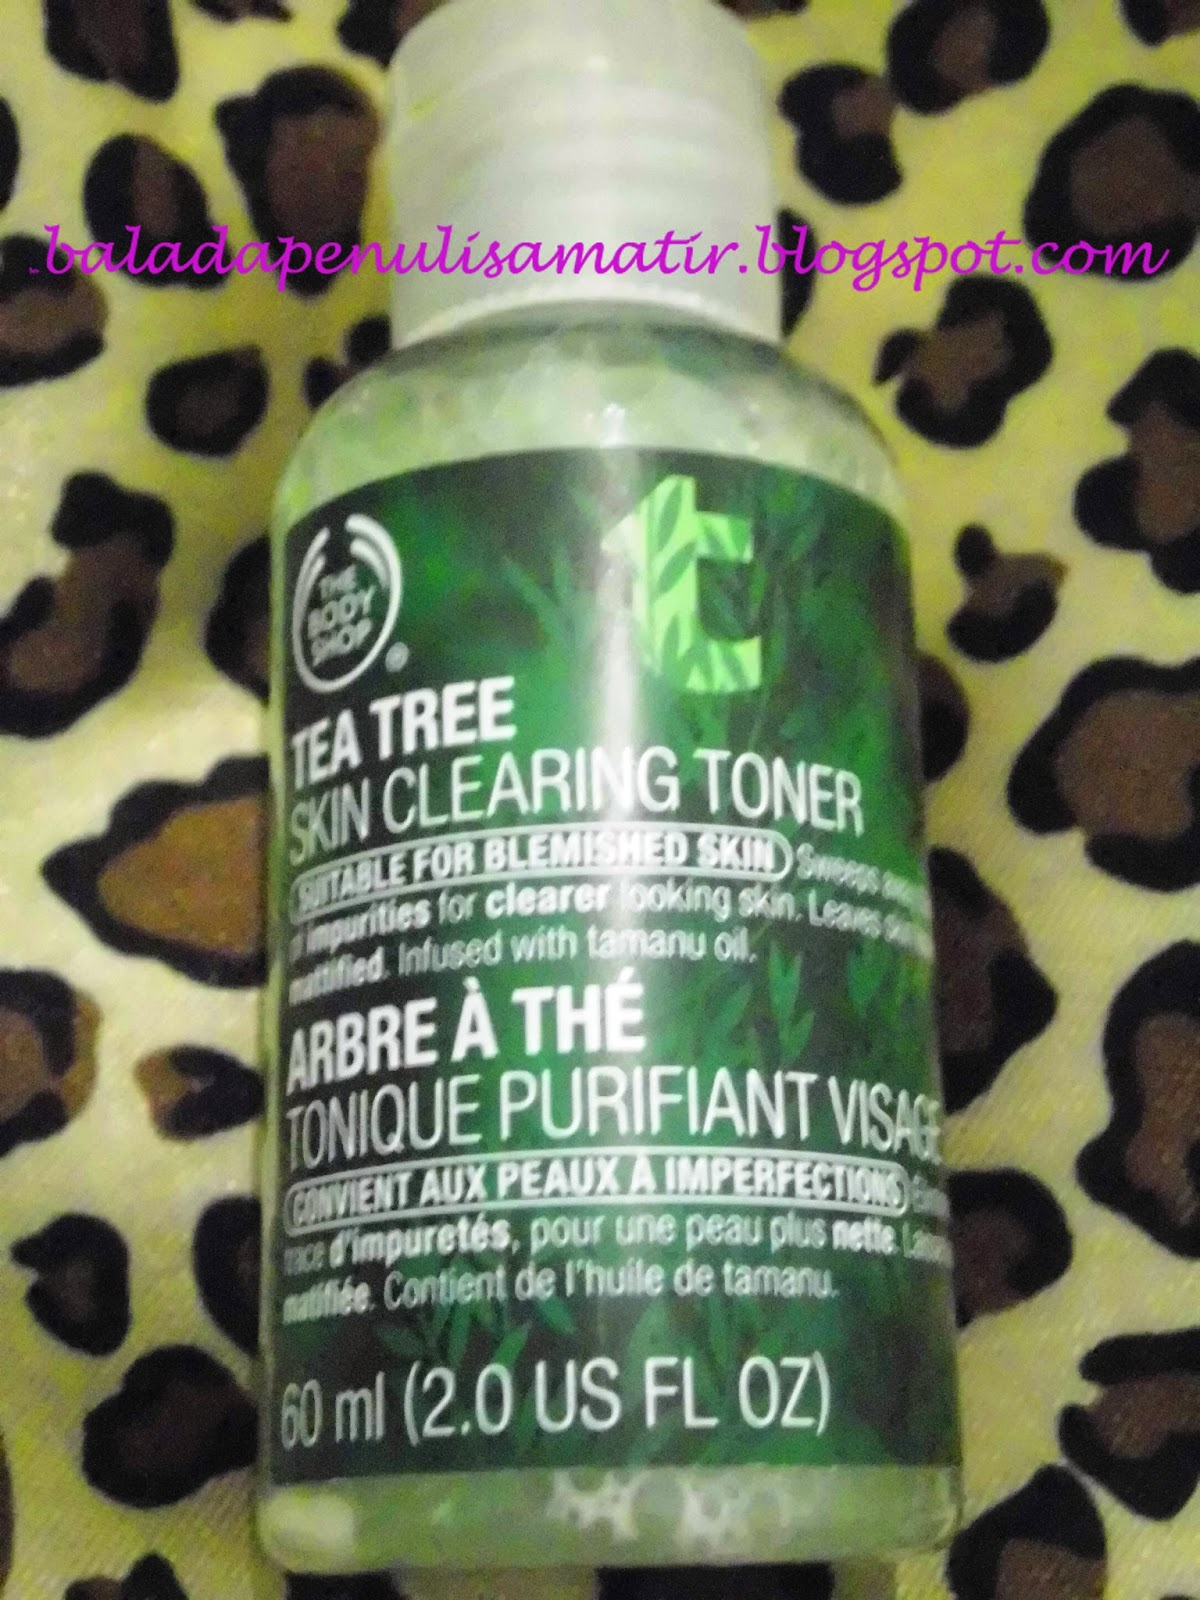 Beauty Talks The Body Shop Tea Tree Skin Clearing Toner Review 60ml Well Let Me Add One More Into Ur Reference Ill Share My Experience About This Product Based On Own Point Of View We All Know That Everyone Has